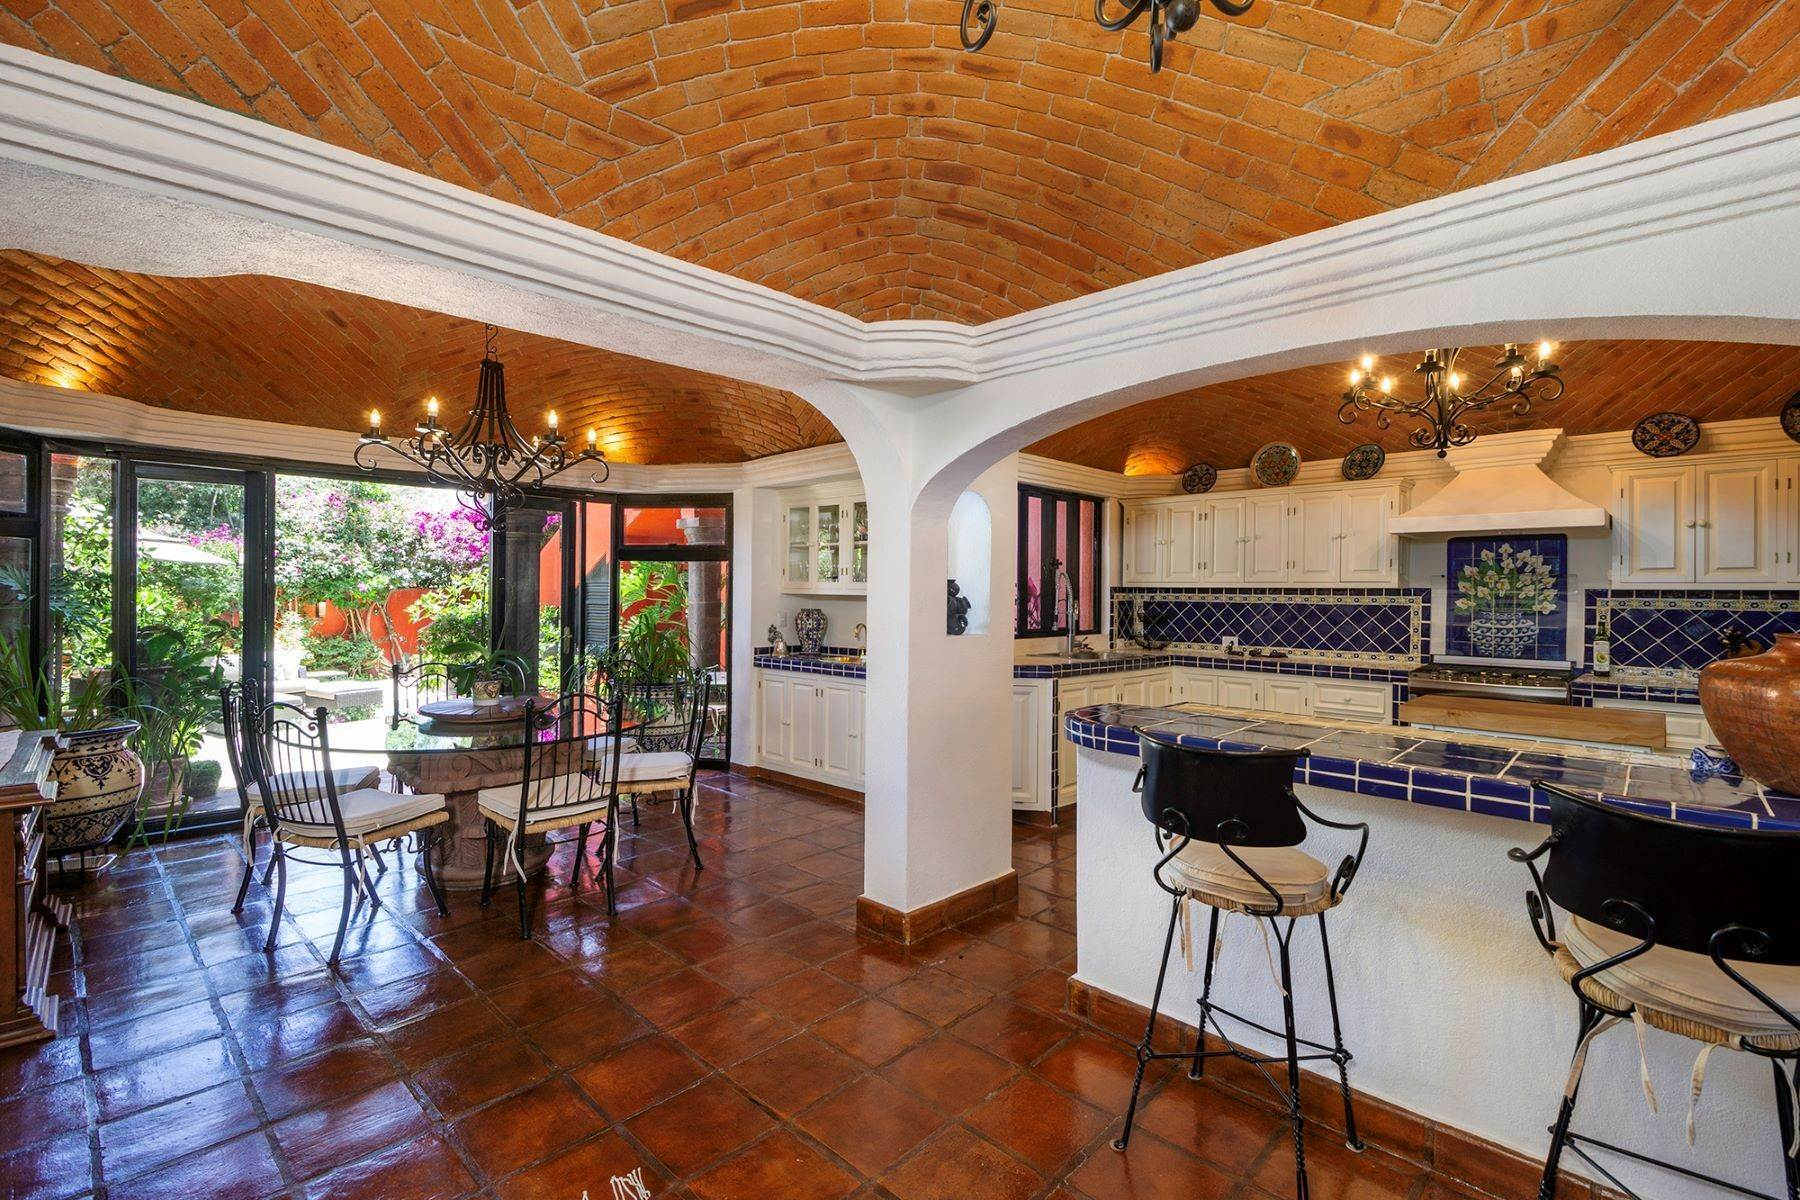 Single Family Homes for Sale at Casa Bovedas Allende, San Miguel De Allende, Guanajuato Mexico